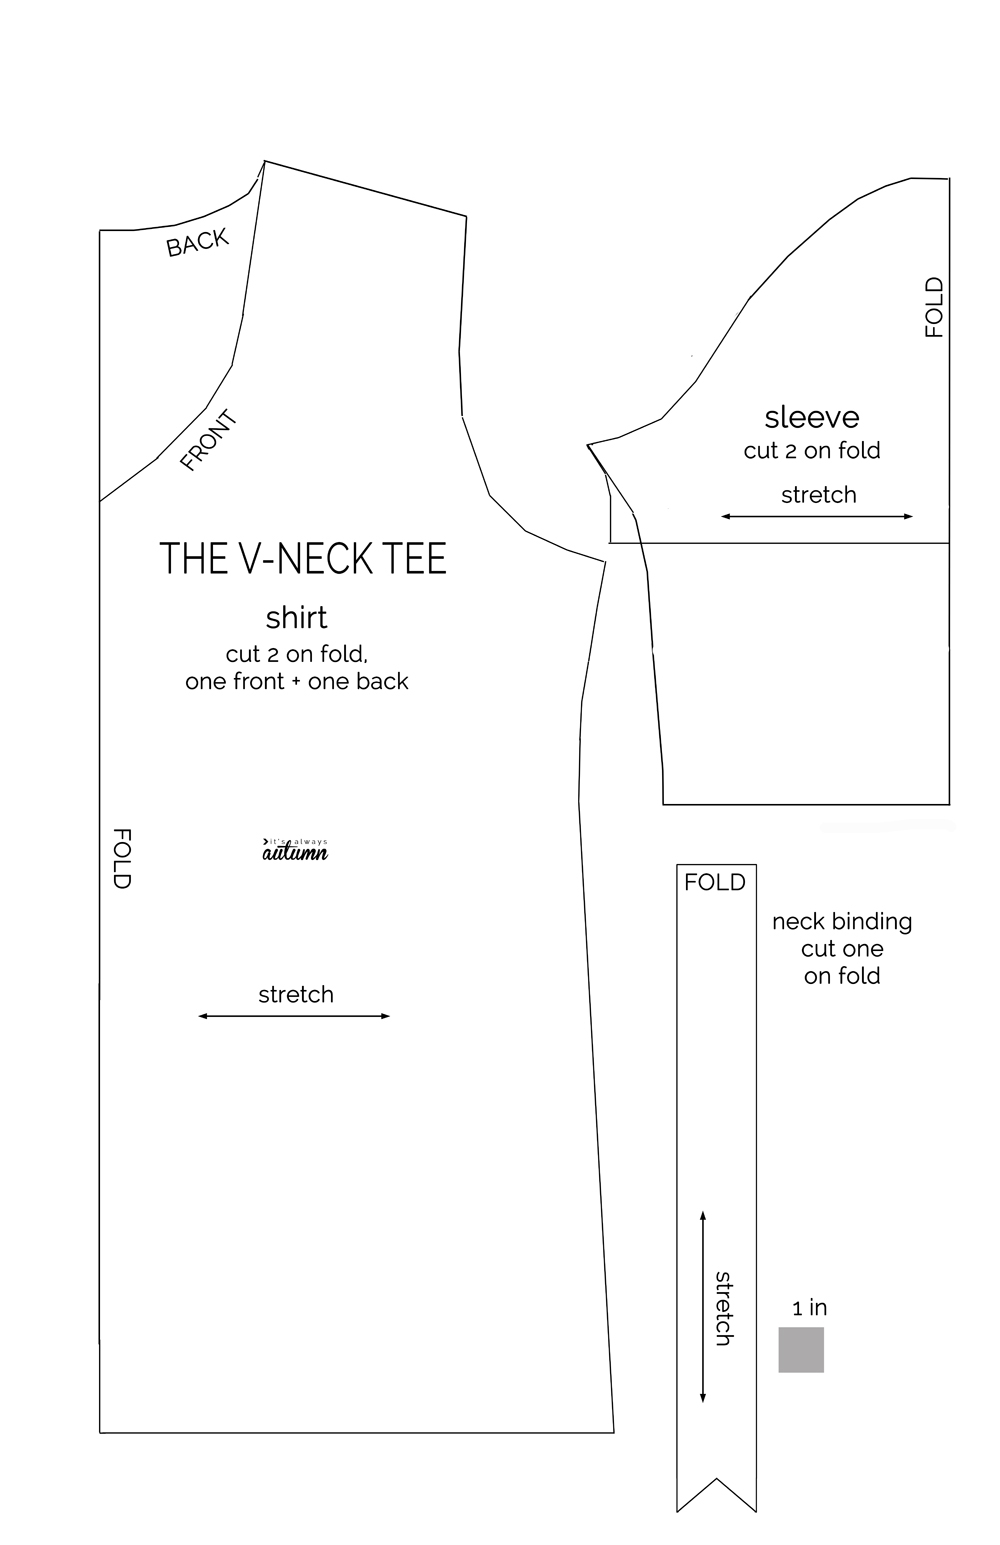 Sewing Tshirt Pattern How To Make A V Neck T Shirt Sewing Pattern And Tutorial Its